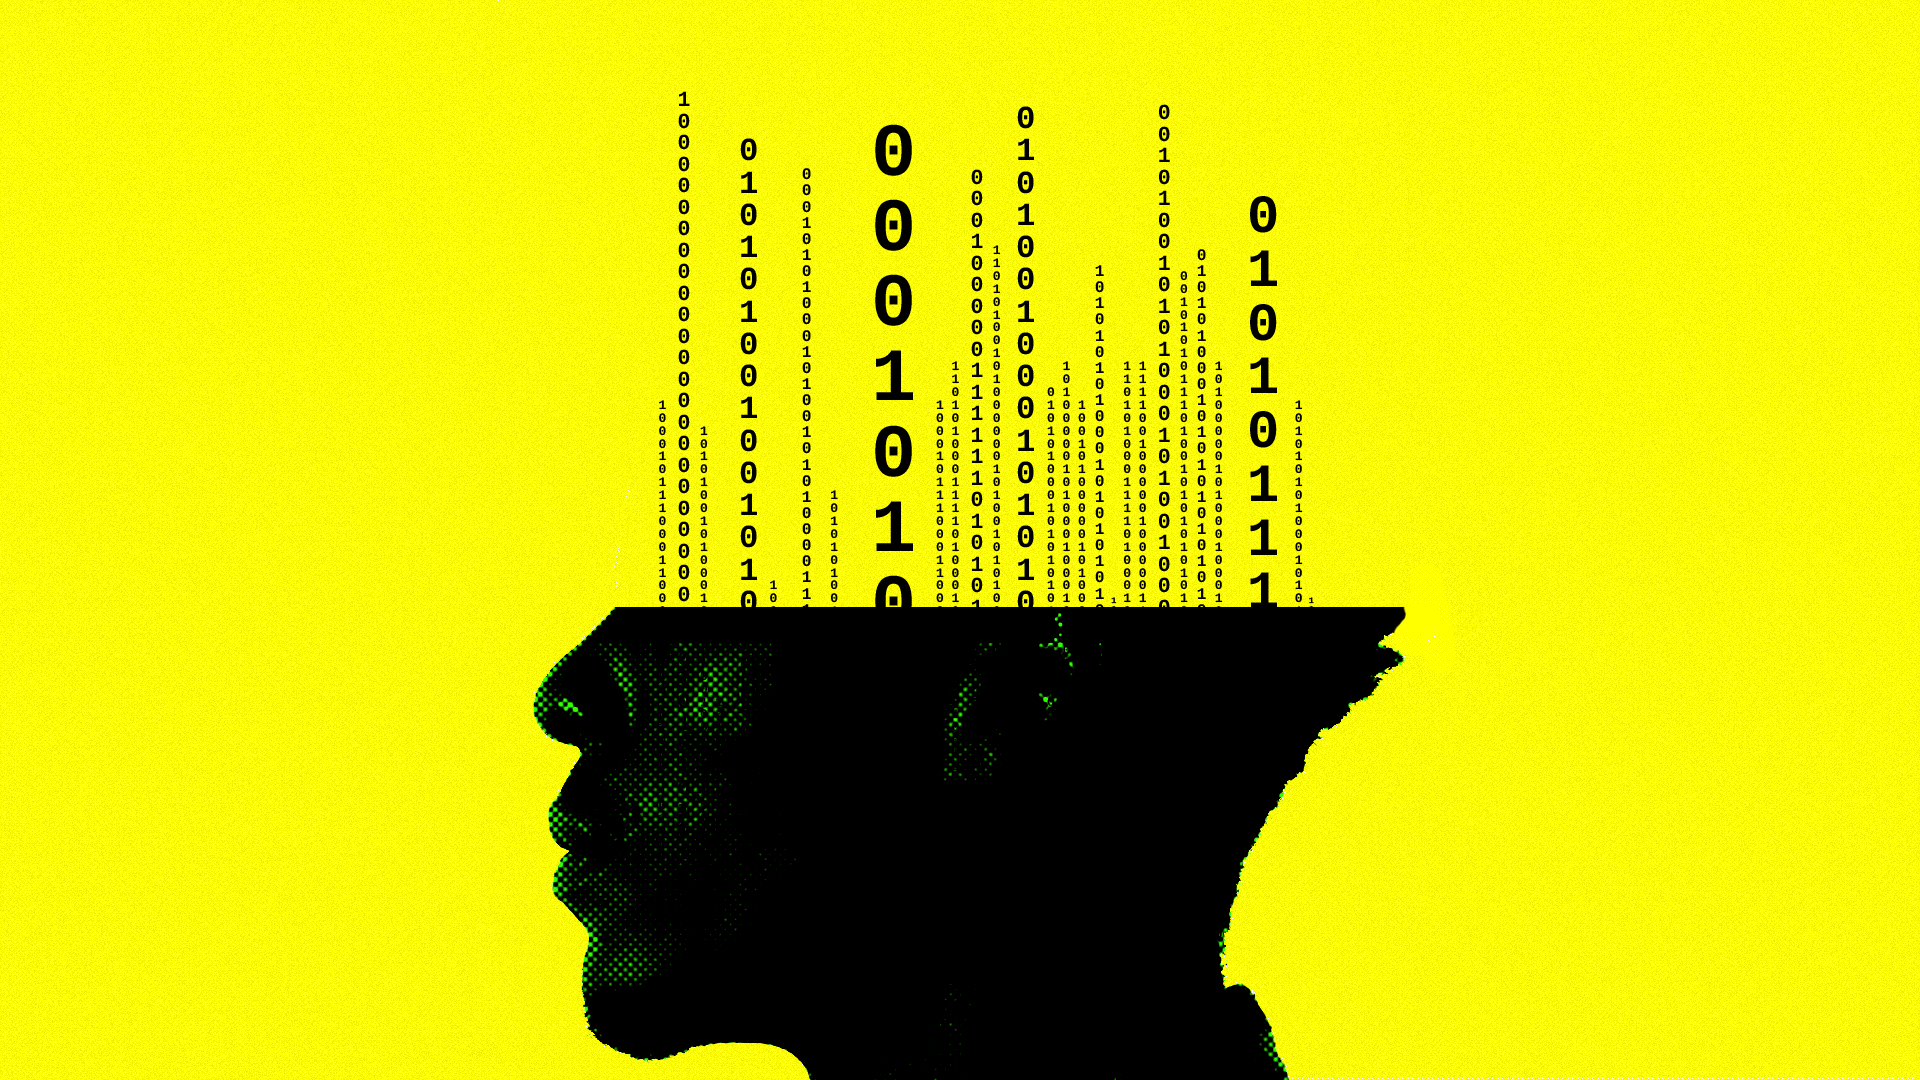 AI researchers are halting work on human-like machines